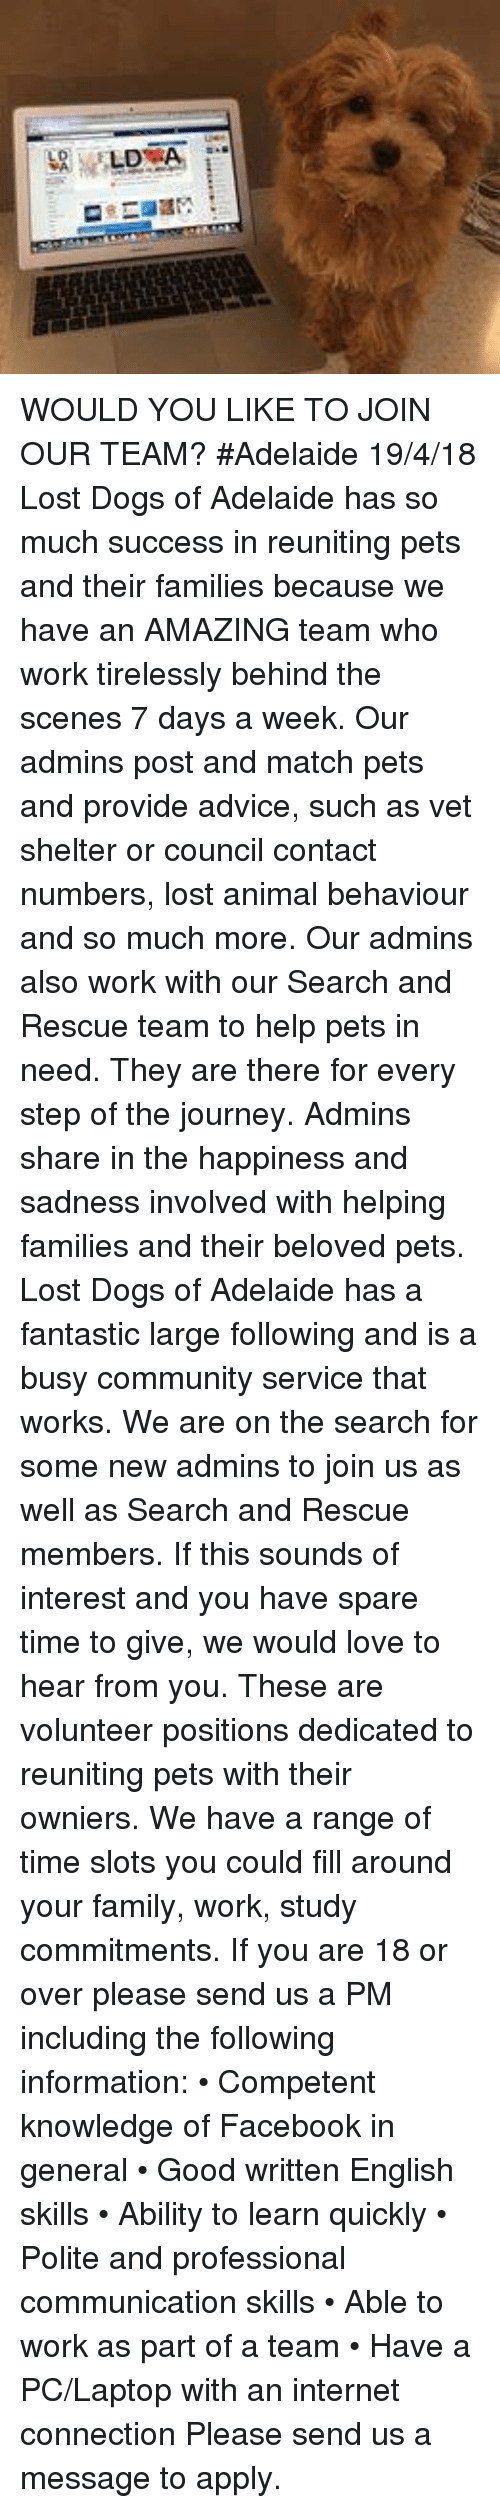 Advice, Community, and Dogs: WOULD YOU LIKE TO JOIN OUR TEAM? #Adelaide 19/4/18  Lost Dogs of Adelaide has so much success in reuniting pets and their families because we have an AMAZING team who work tirelessly behind the scenes 7 days a week. Our admins post and match pets and provide advice, such as vet shelter or council contact numbers, lost animal behaviour and so much more. Our admins also work with our Search and Rescue team to help pets in need. They are there for every step of the journey. Admins share in the happiness and sadness involved with helping families and their beloved pets.  Lost Dogs of Adelaide has a fantastic large following and is a busy community service that works. We are on the search for some new admins to join us as well as Search and Rescue members. If this sounds of interest and you have spare time to give, we would love to hear from you. These are volunteer positions dedicated to reuniting pets with their owniers. We have a range of time slots you could fill around your family, work, study commitments.    If you are 18 or over please send us a PM including the following information: • Competent knowledge of Facebook in general • Good written English skills • Ability to learn quickly • Polite and professional communication skills • Able to work as part of a team • Have a PC/Laptop with an internet connection  Please send us a message to apply.